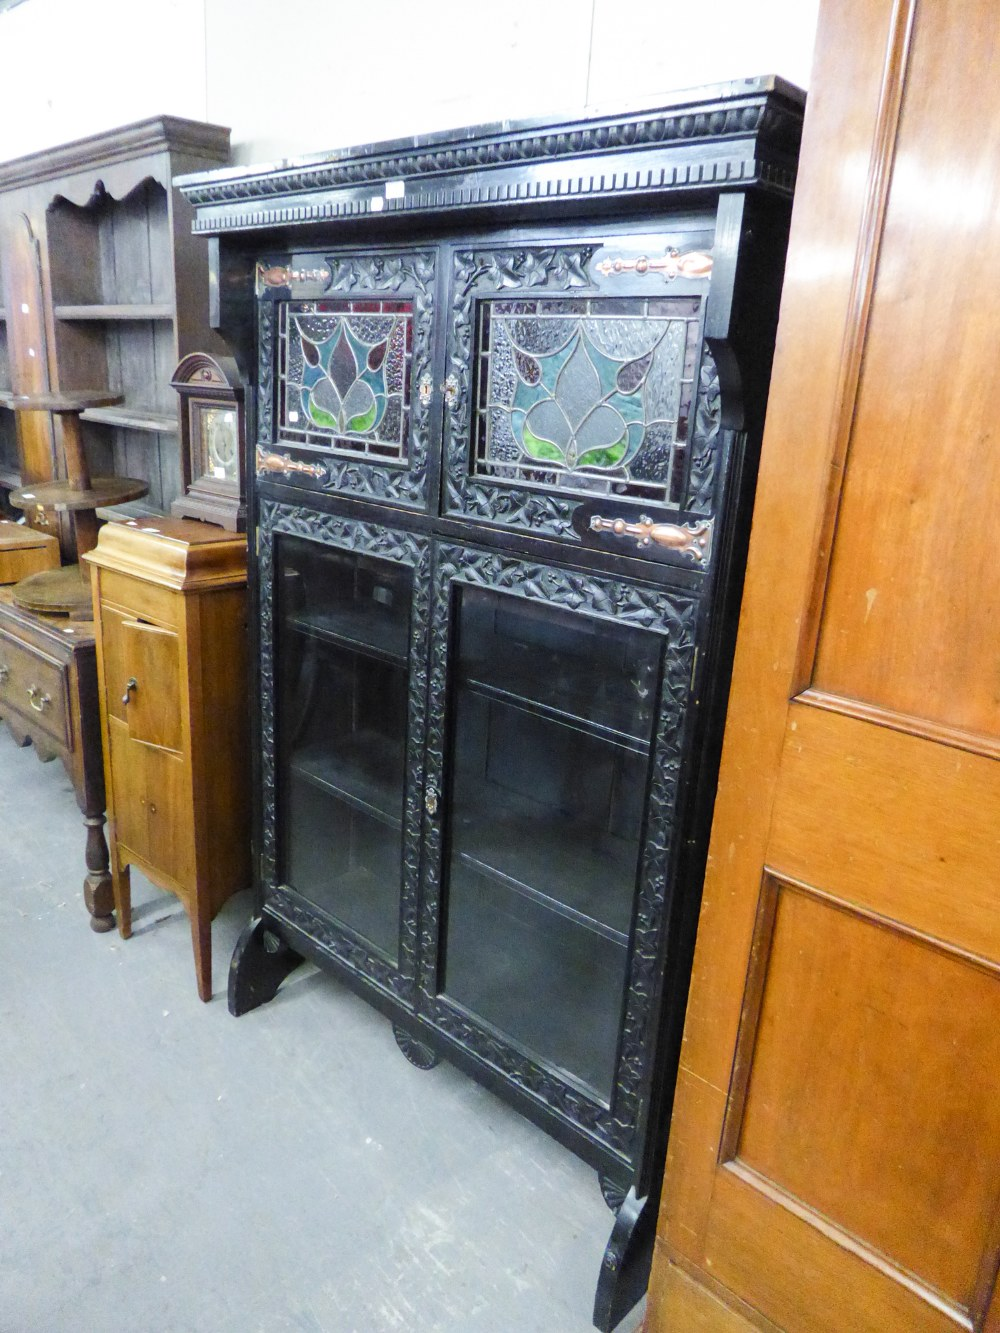 Lot 48 - A LATE NINETEENTH CENTURY DARK OAK BOOKCASE, THE UPPER SECTION ENCLOSED BY TWO LEADED AND STAINED